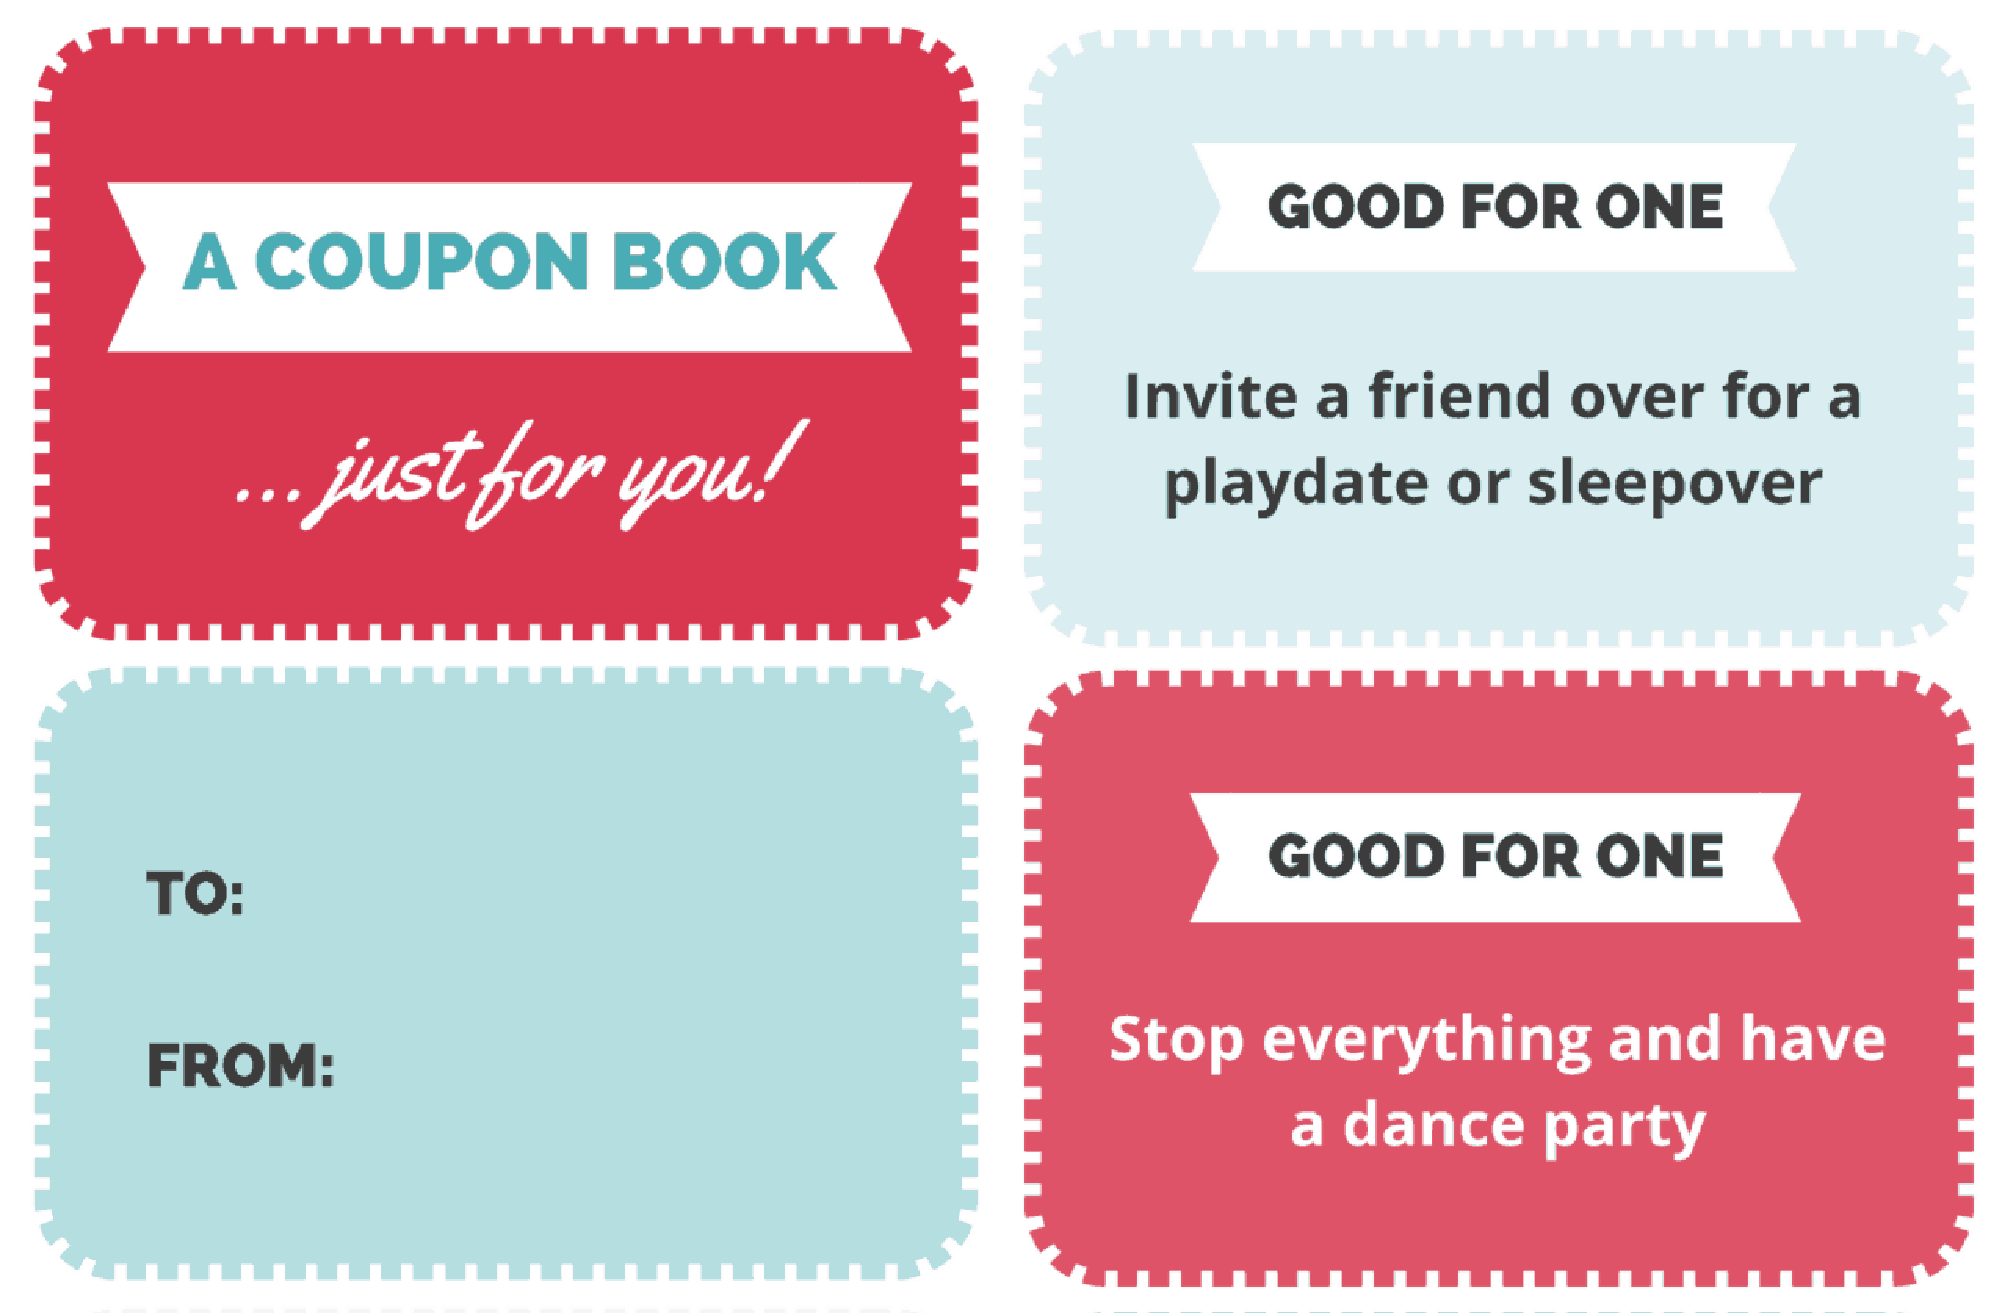 A Free Printable Coupon Book For Kids That Makes The Best Gift - Free Printable Homemade Coupon Book